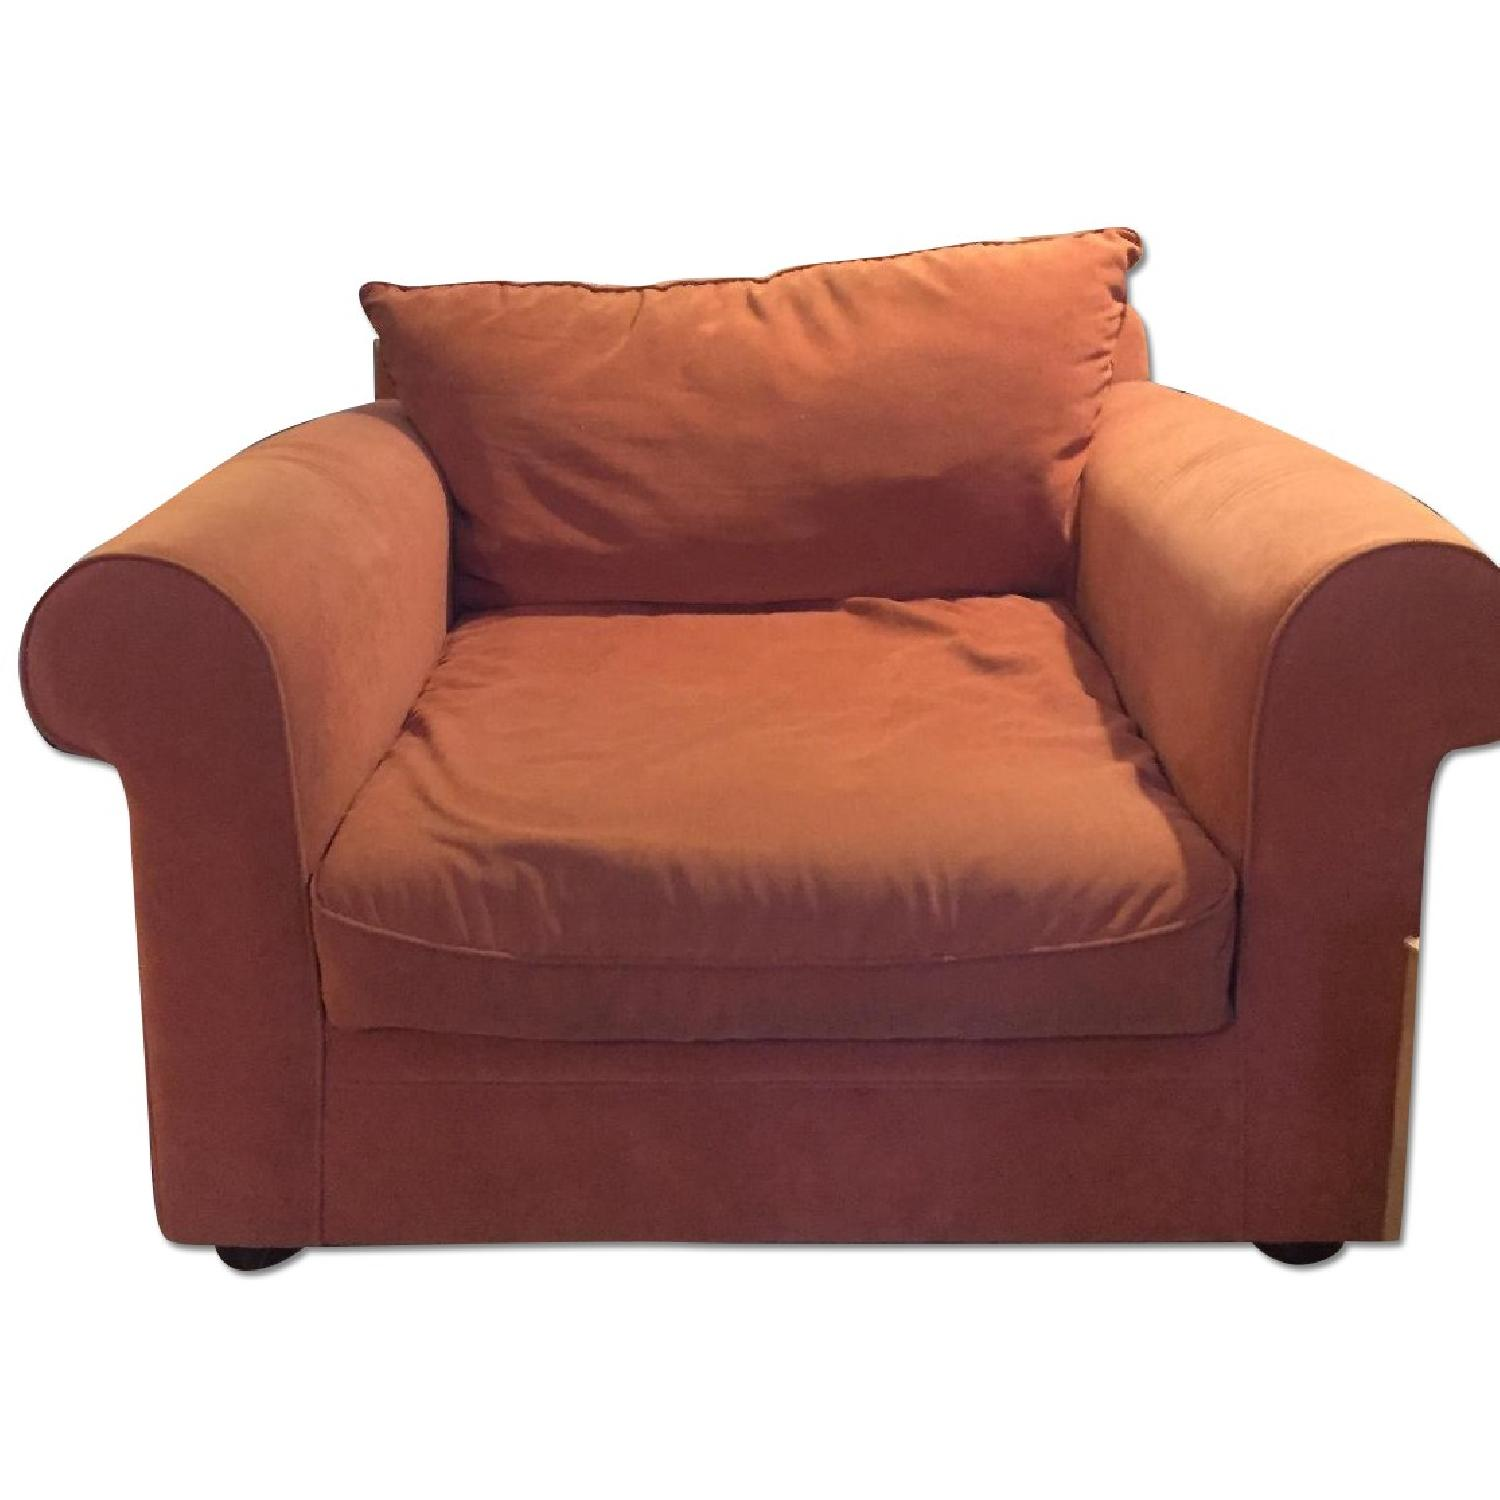 Orange Microsuede Armchair - image-0